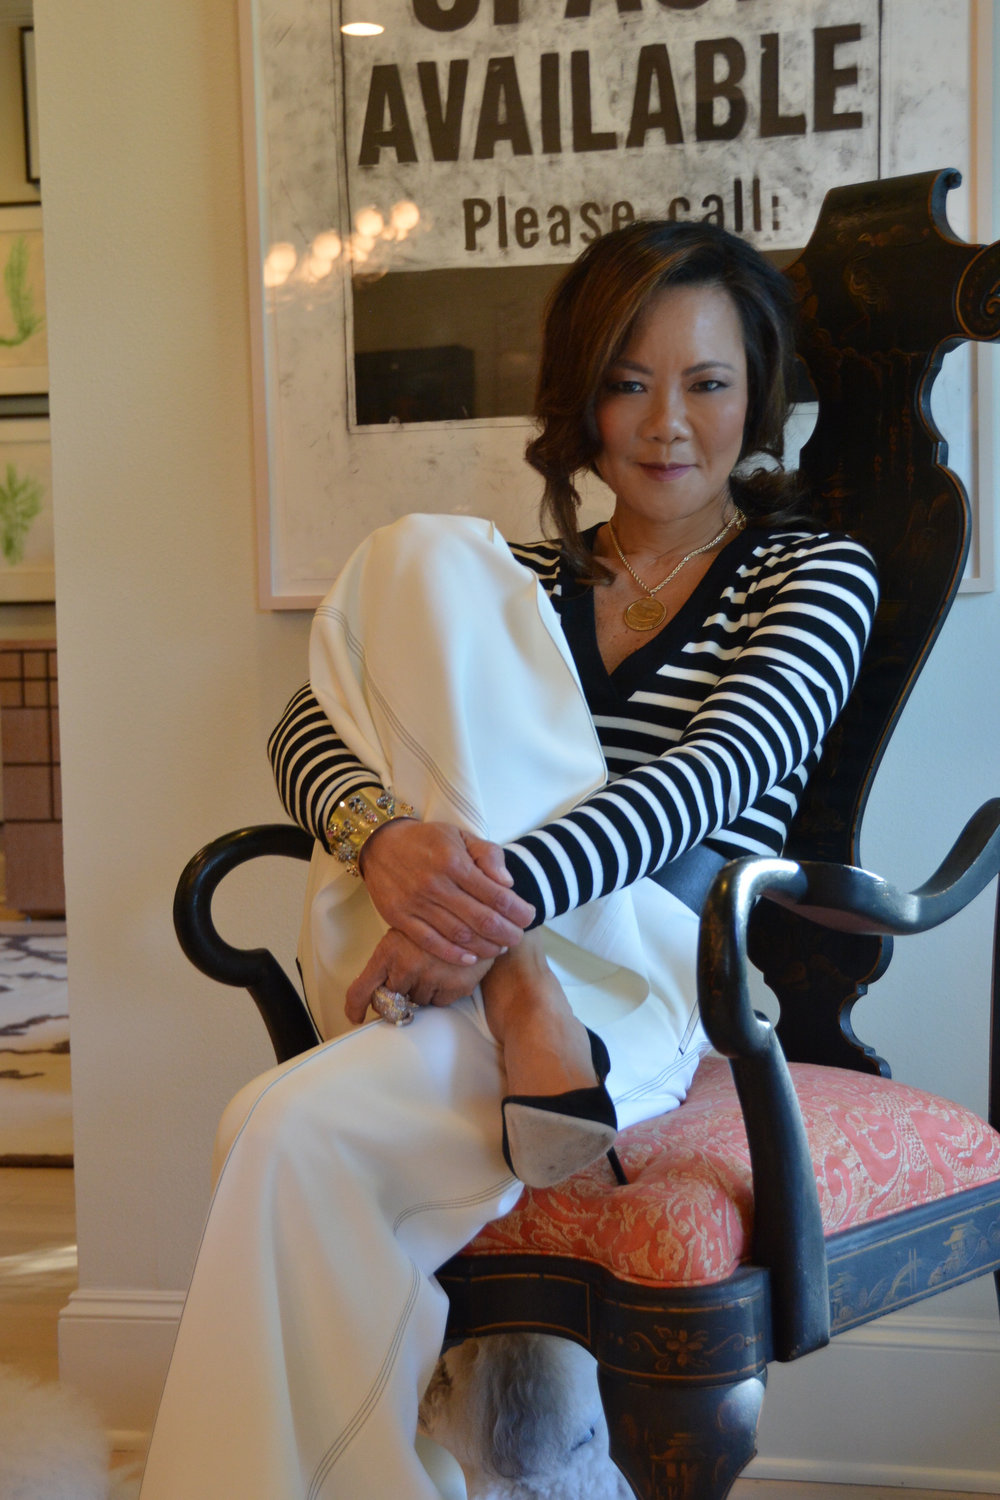 After my long work week, it was such a delight to freshen up and enjoy some much needed downtime with friends. I chose a pair of crisp white Celine, wide leg culottes with black back pocket detailing and stitching for their flattering lines and the glorious flow. On top, I'm wearing a Veronica Beard black and white body suit which  complimented the fluid lines of the Celine pants. For a little bit of pop and sparkle, I added with my favorite Alexis Bittar gold cuff bracelet and ring.    But the real story here is my distressed Luisa Spagnoli belt. It was pretty rough to discover that this beautiful buckle had a significant scratch across its surface. Rather than shy away from wearing it, or much worse, getting rid of it, I decided to just go with it. I got a hammer, and distressed the hardware even more to give it a completely different but edgier look, which seemed more fitting than the odd single but noticeable scratch . Now the belt is still beautiful, but a tad more current in feel and I wear it even more than ever. Another example of how when life gives you lemons...  Hope you're having a great week. xo, Kathleen